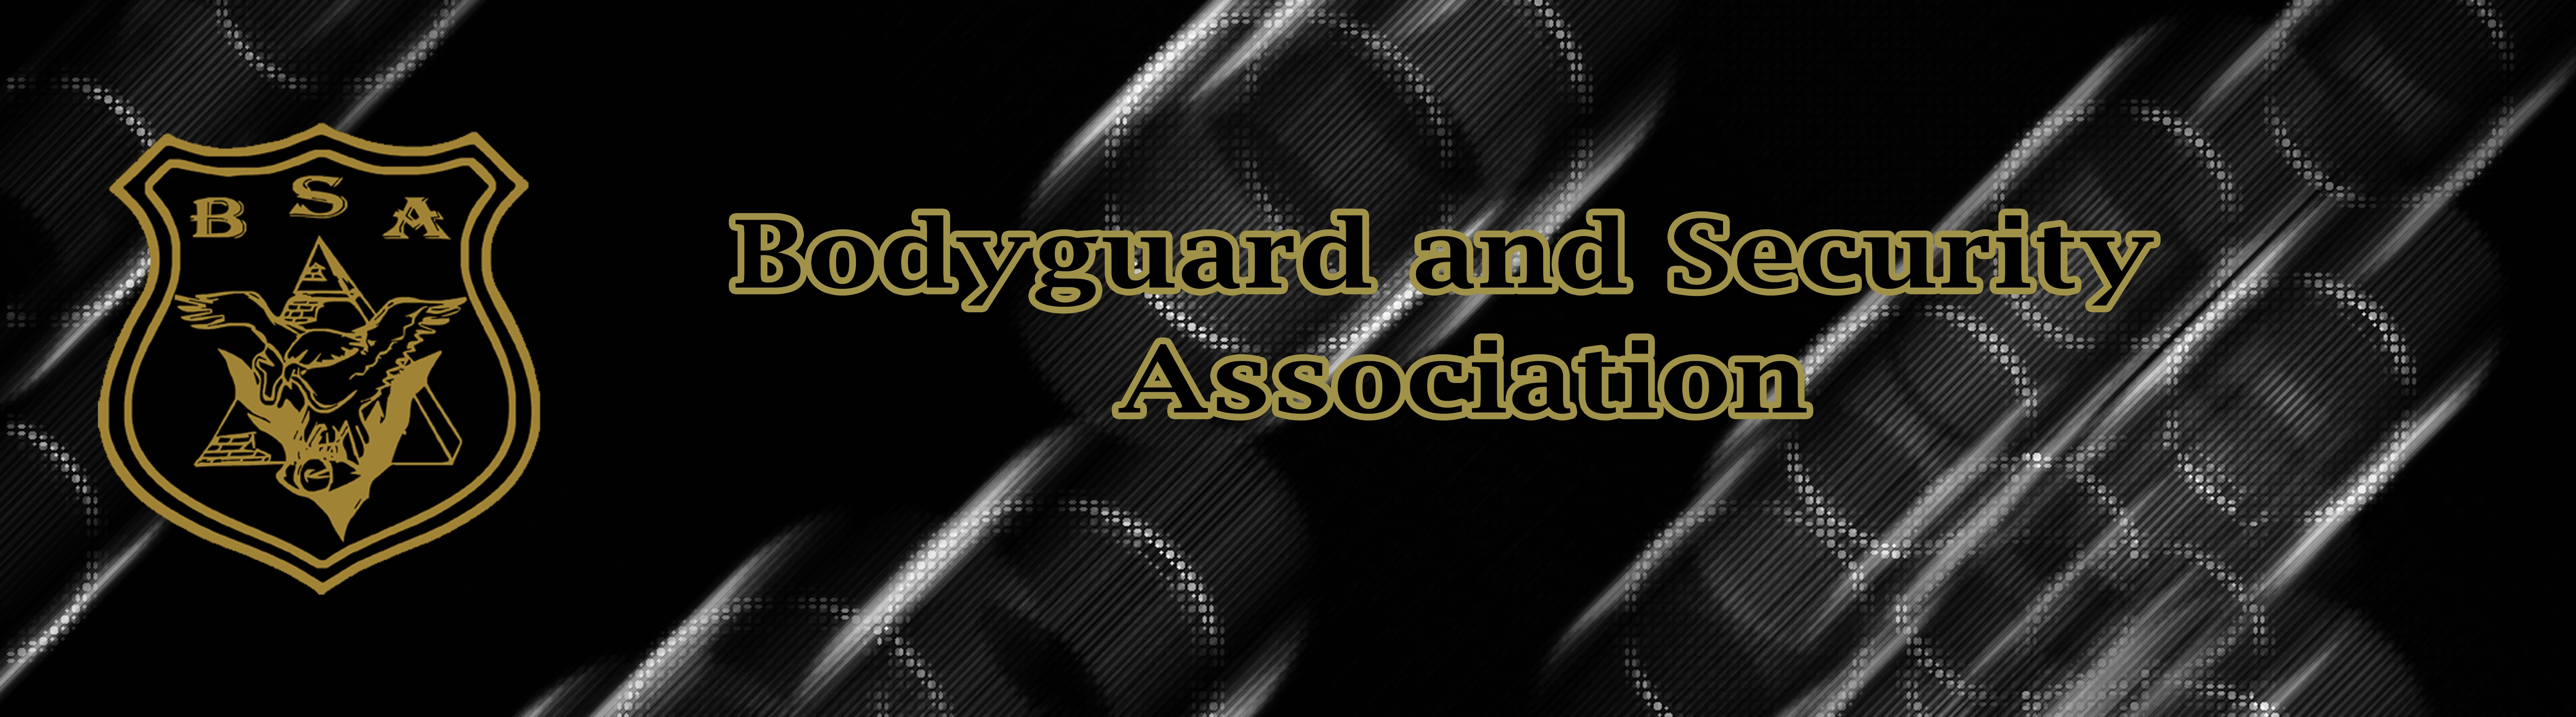 BSA Bodyguard & Security Association